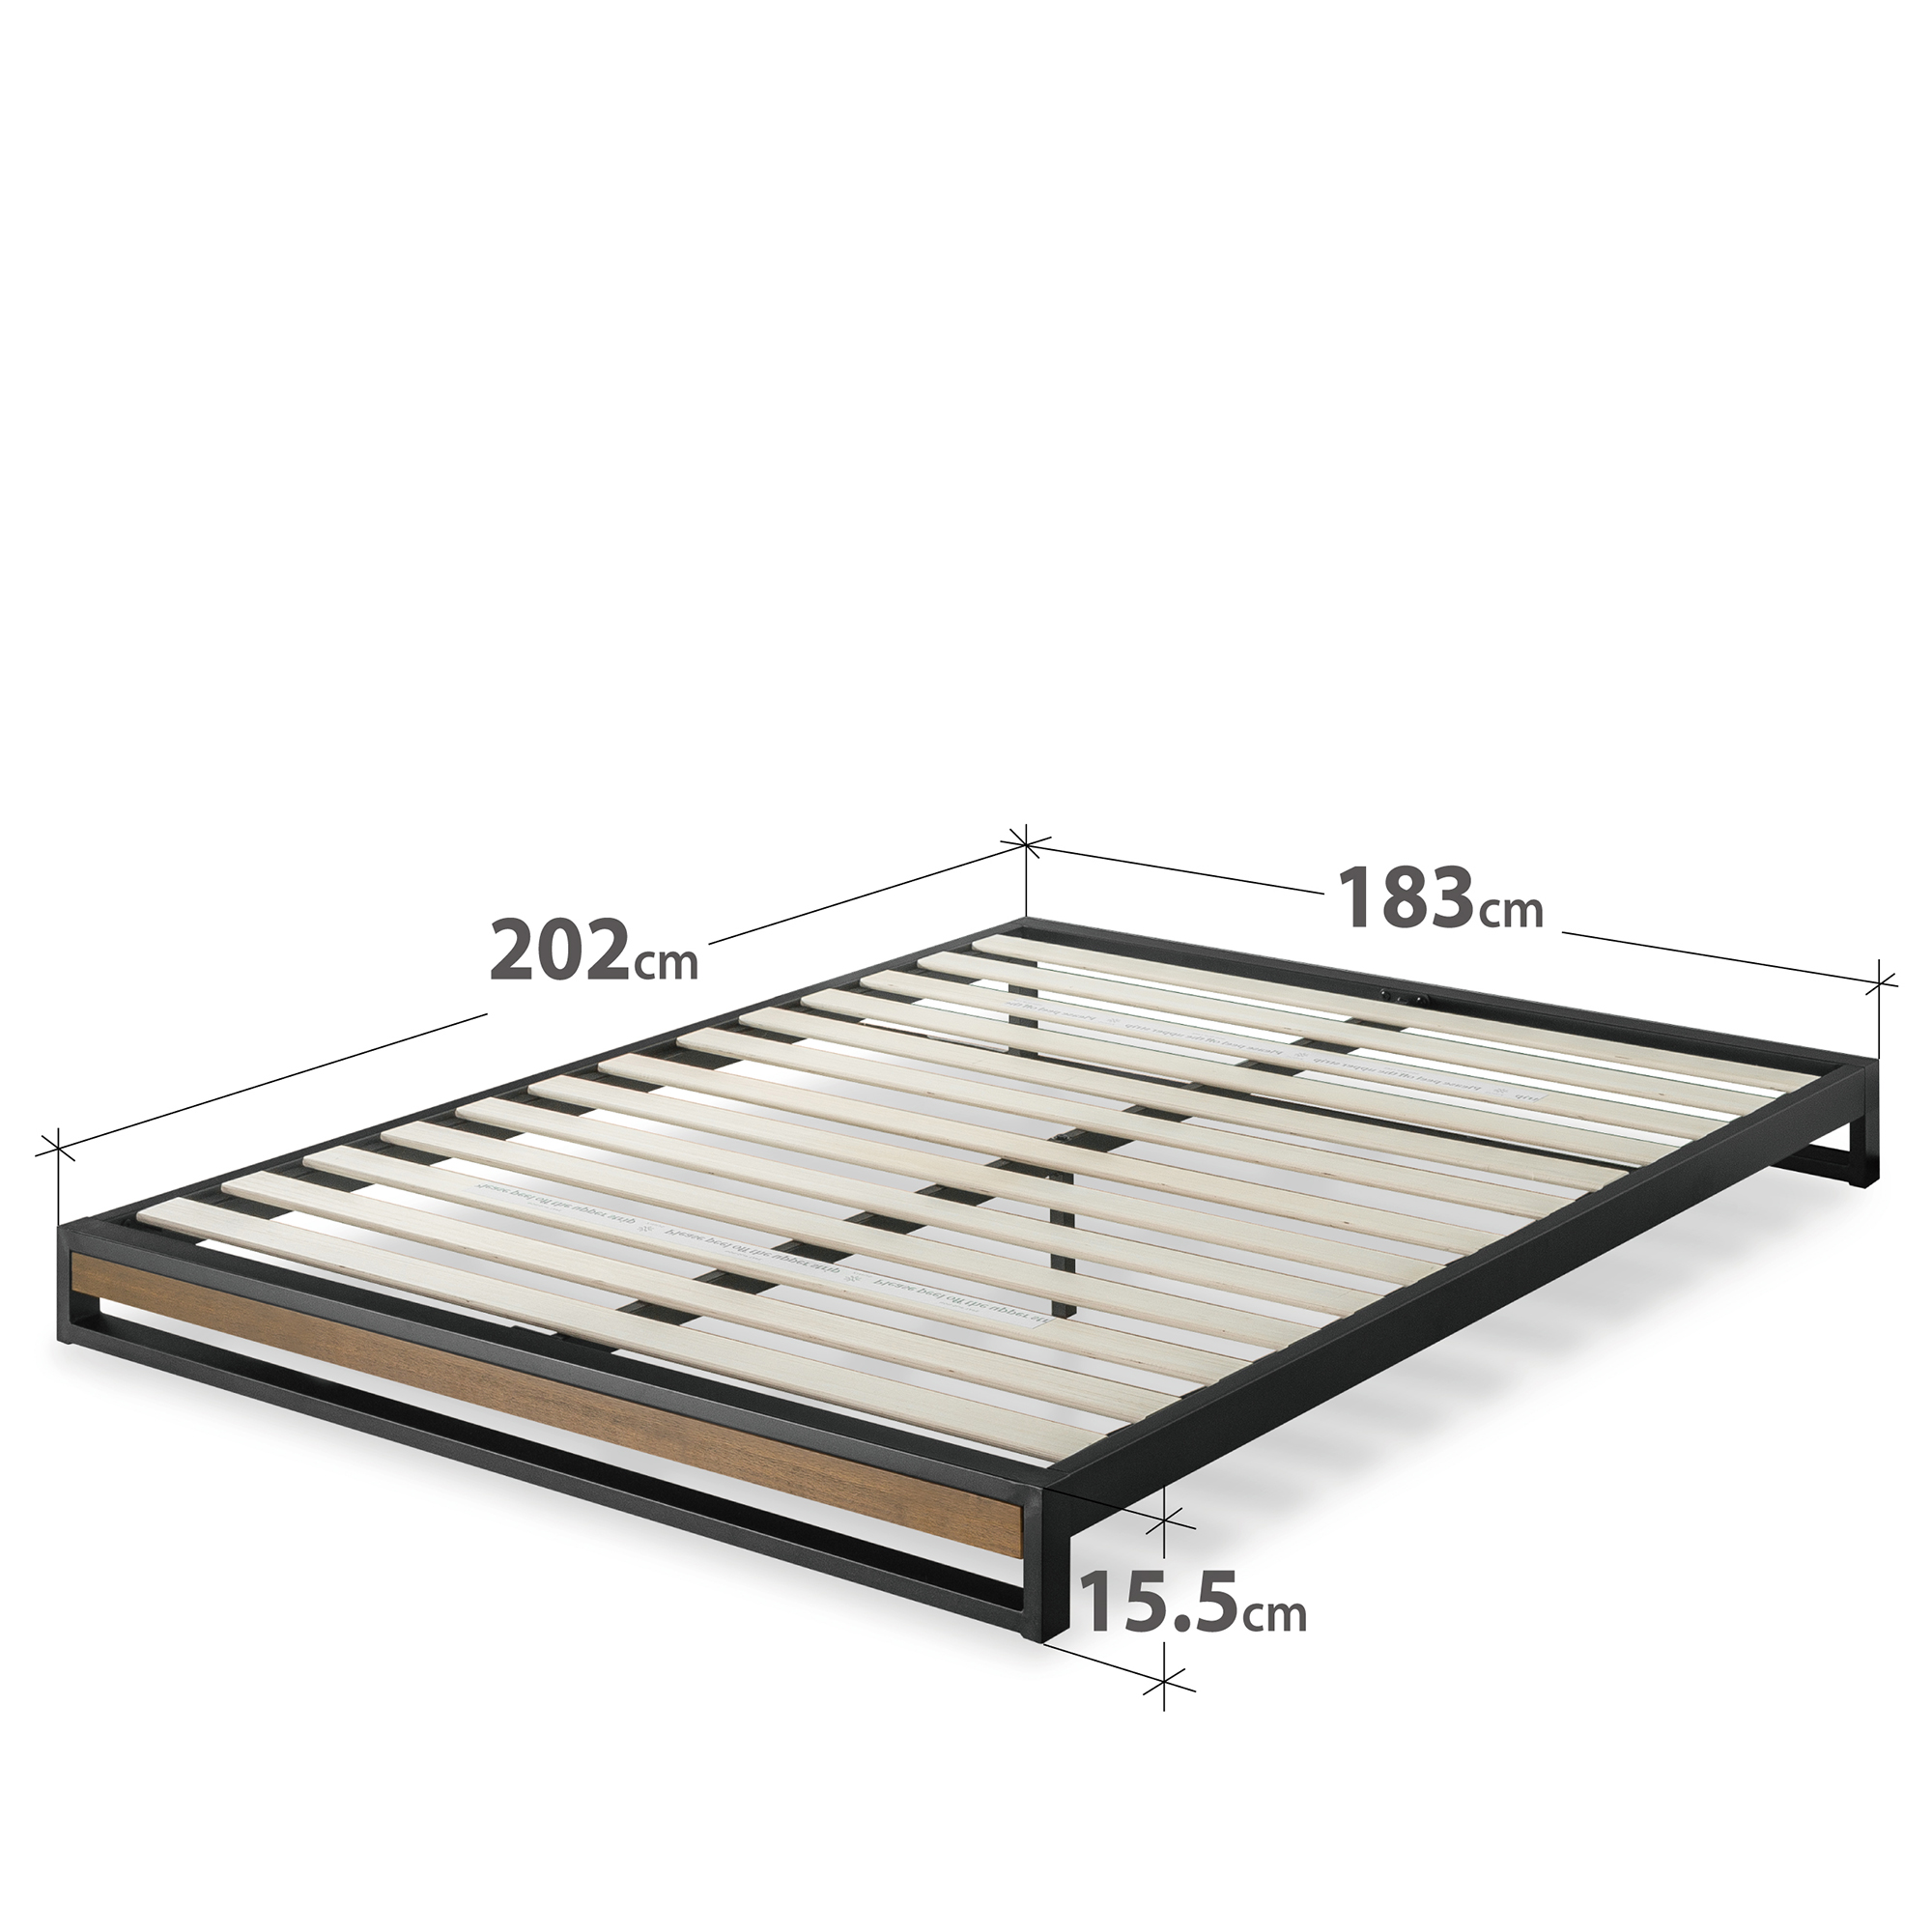 Zinus-Industrial-Metal-Wood-Bed-Frame-Single-Double-Queen-King-Low-Base-Mattress thumbnail 19